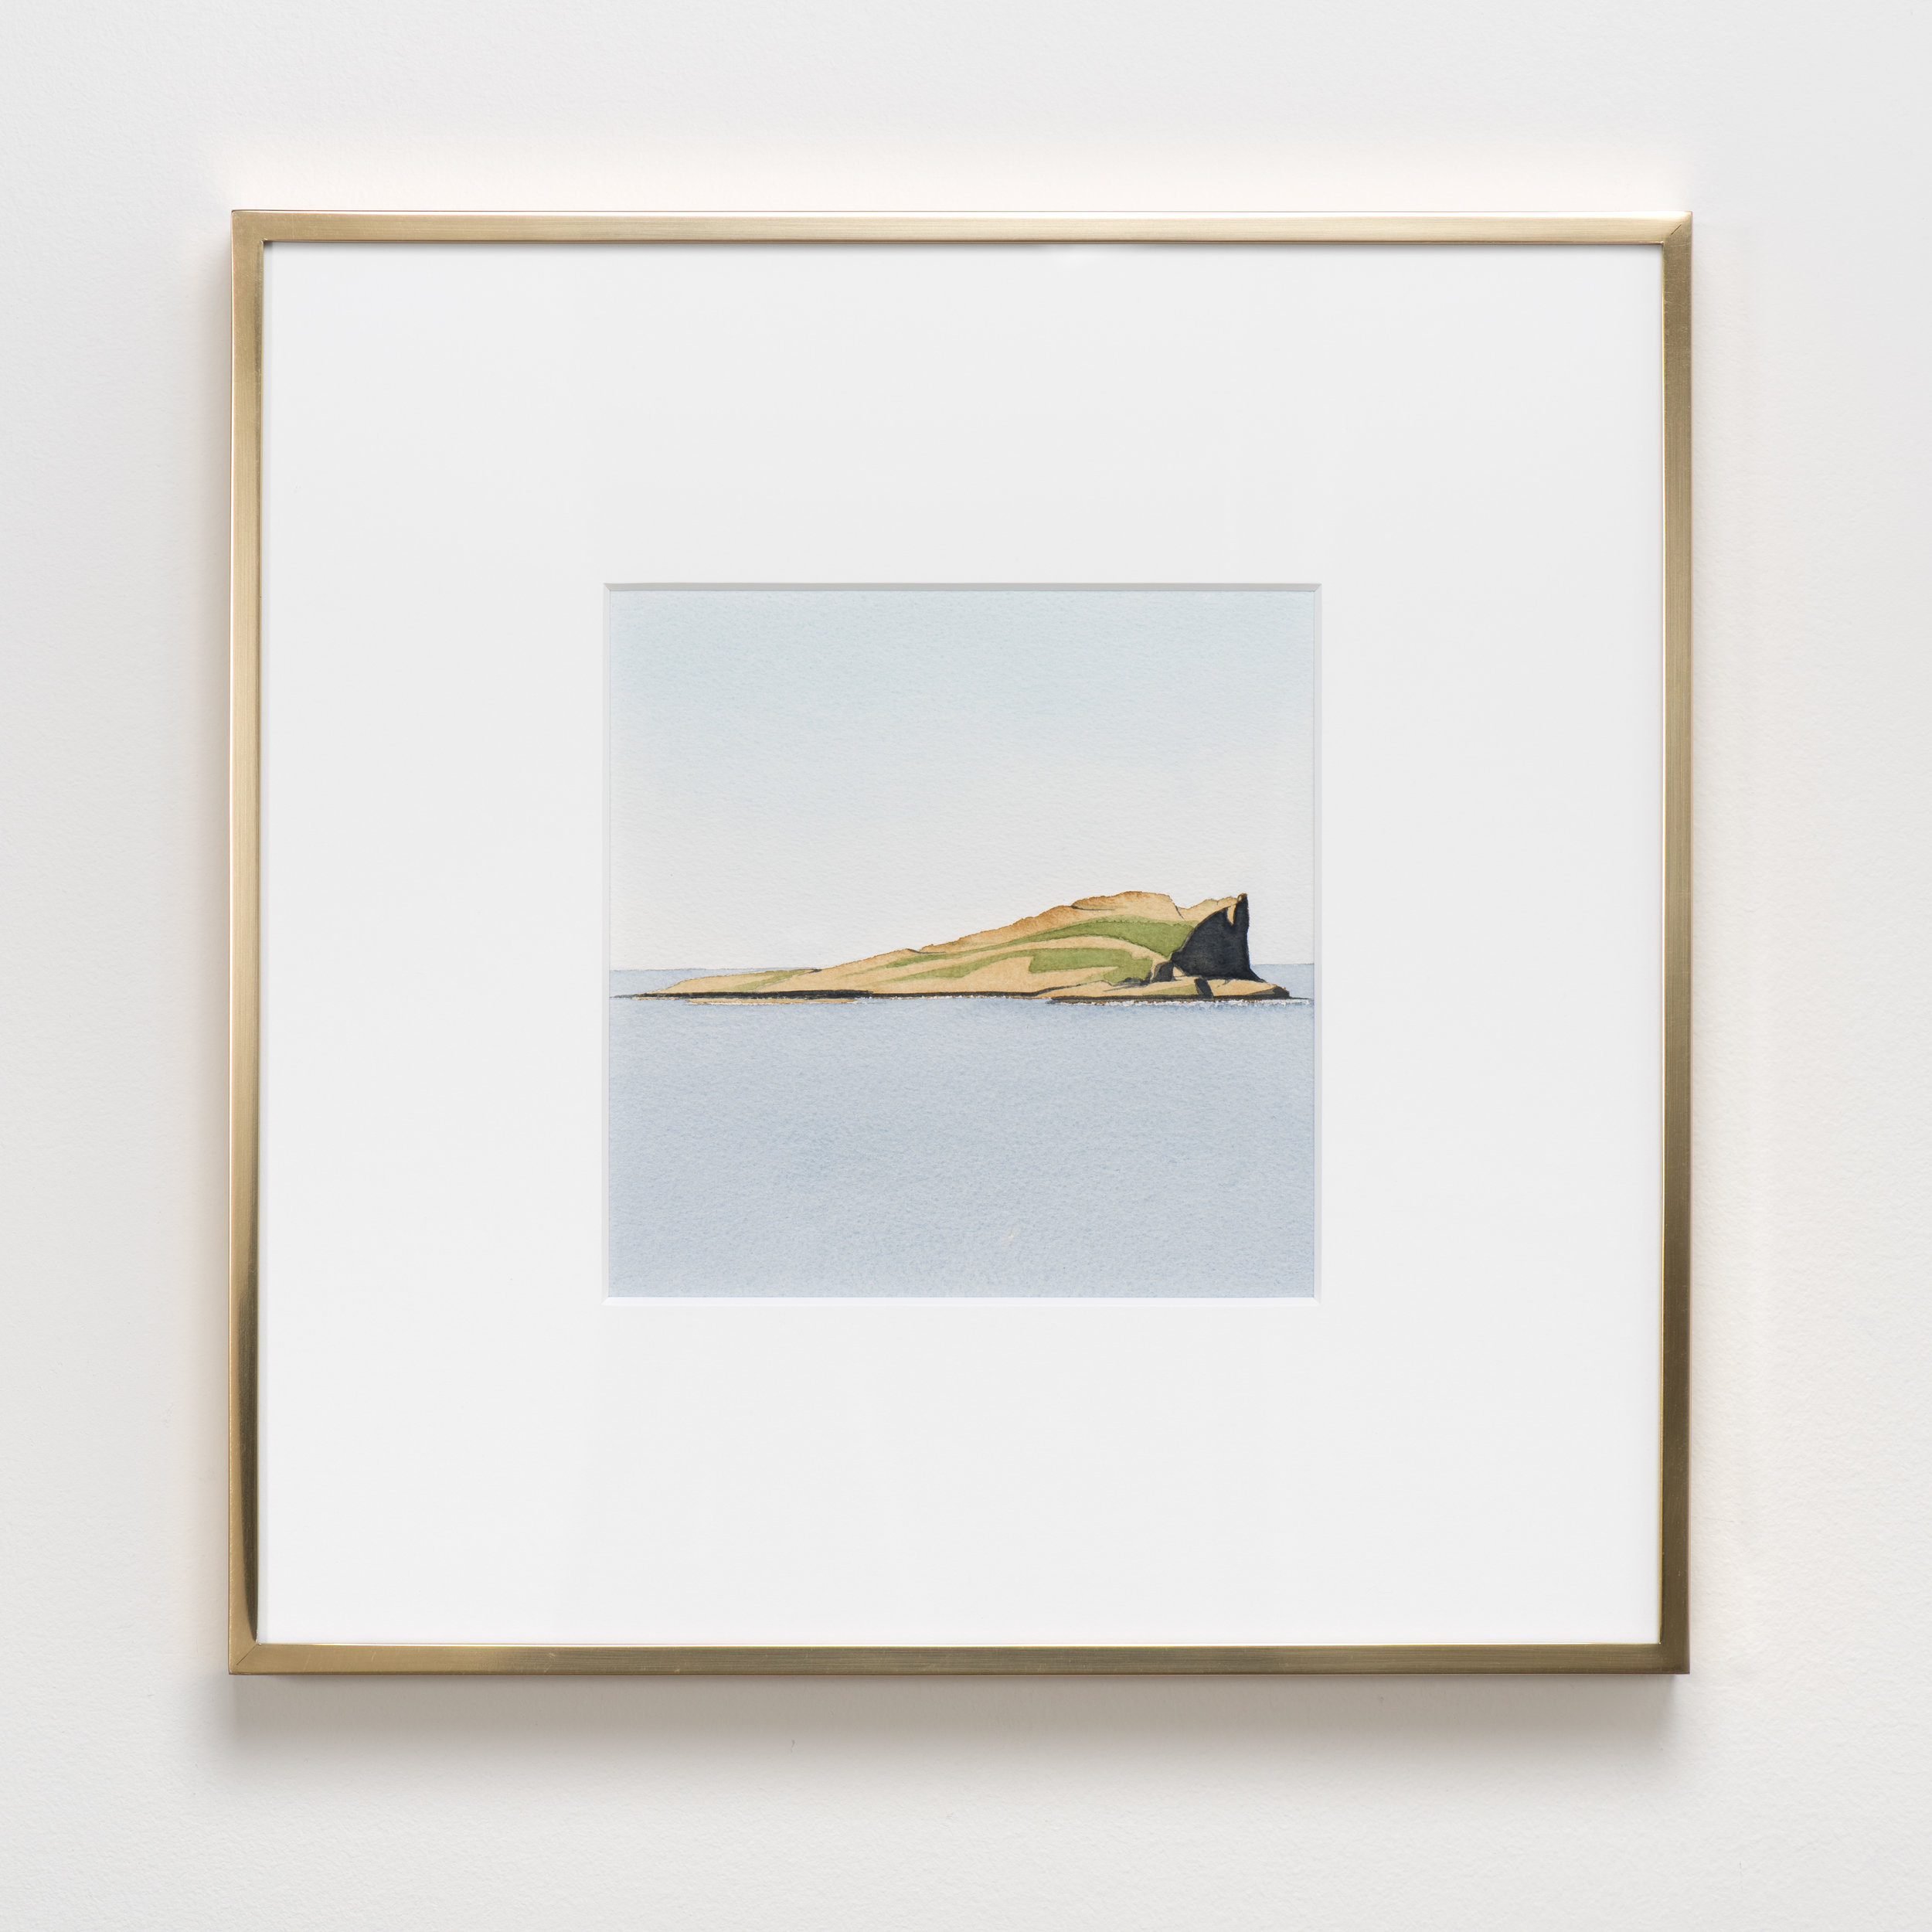 Kylie White  Flodigarry Island, Isle of Skye , 2017 Watercolor on paper 15 7/8 x 15 7/8 inches